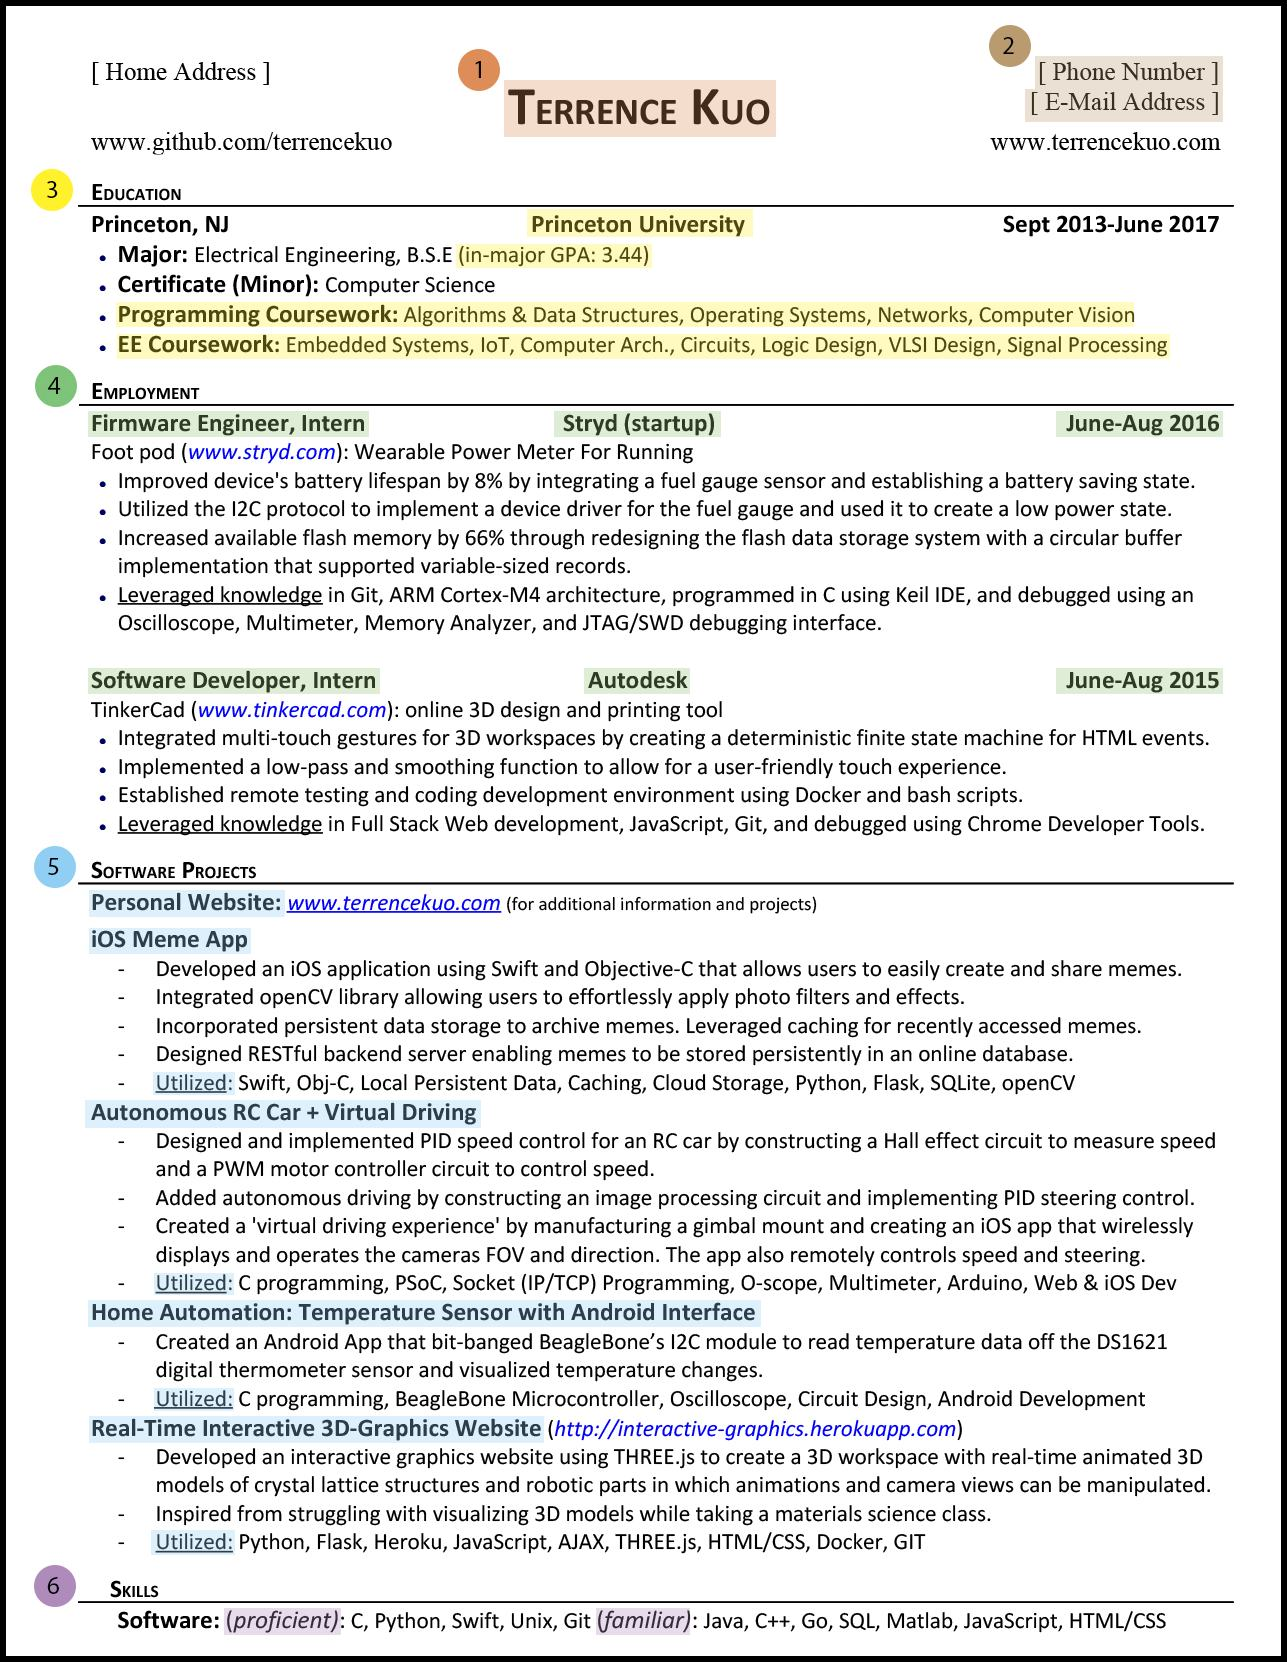 to write killer software engineering résumé projects for resume sections highlight tk Resume Software Projects For Resume